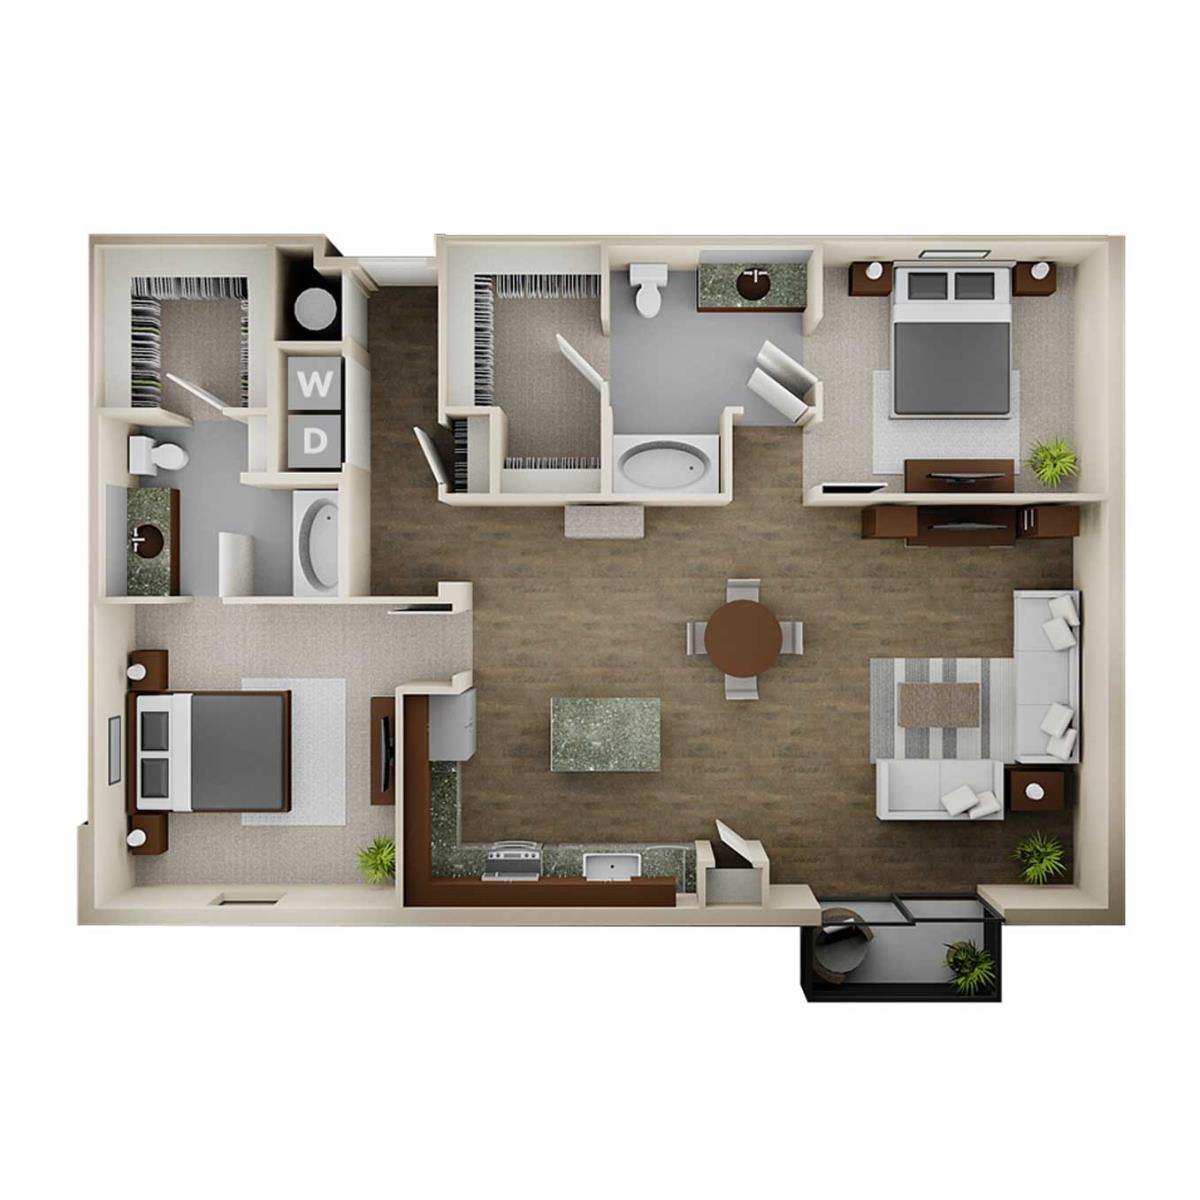 1,370 sq. ft. 2C floor plan